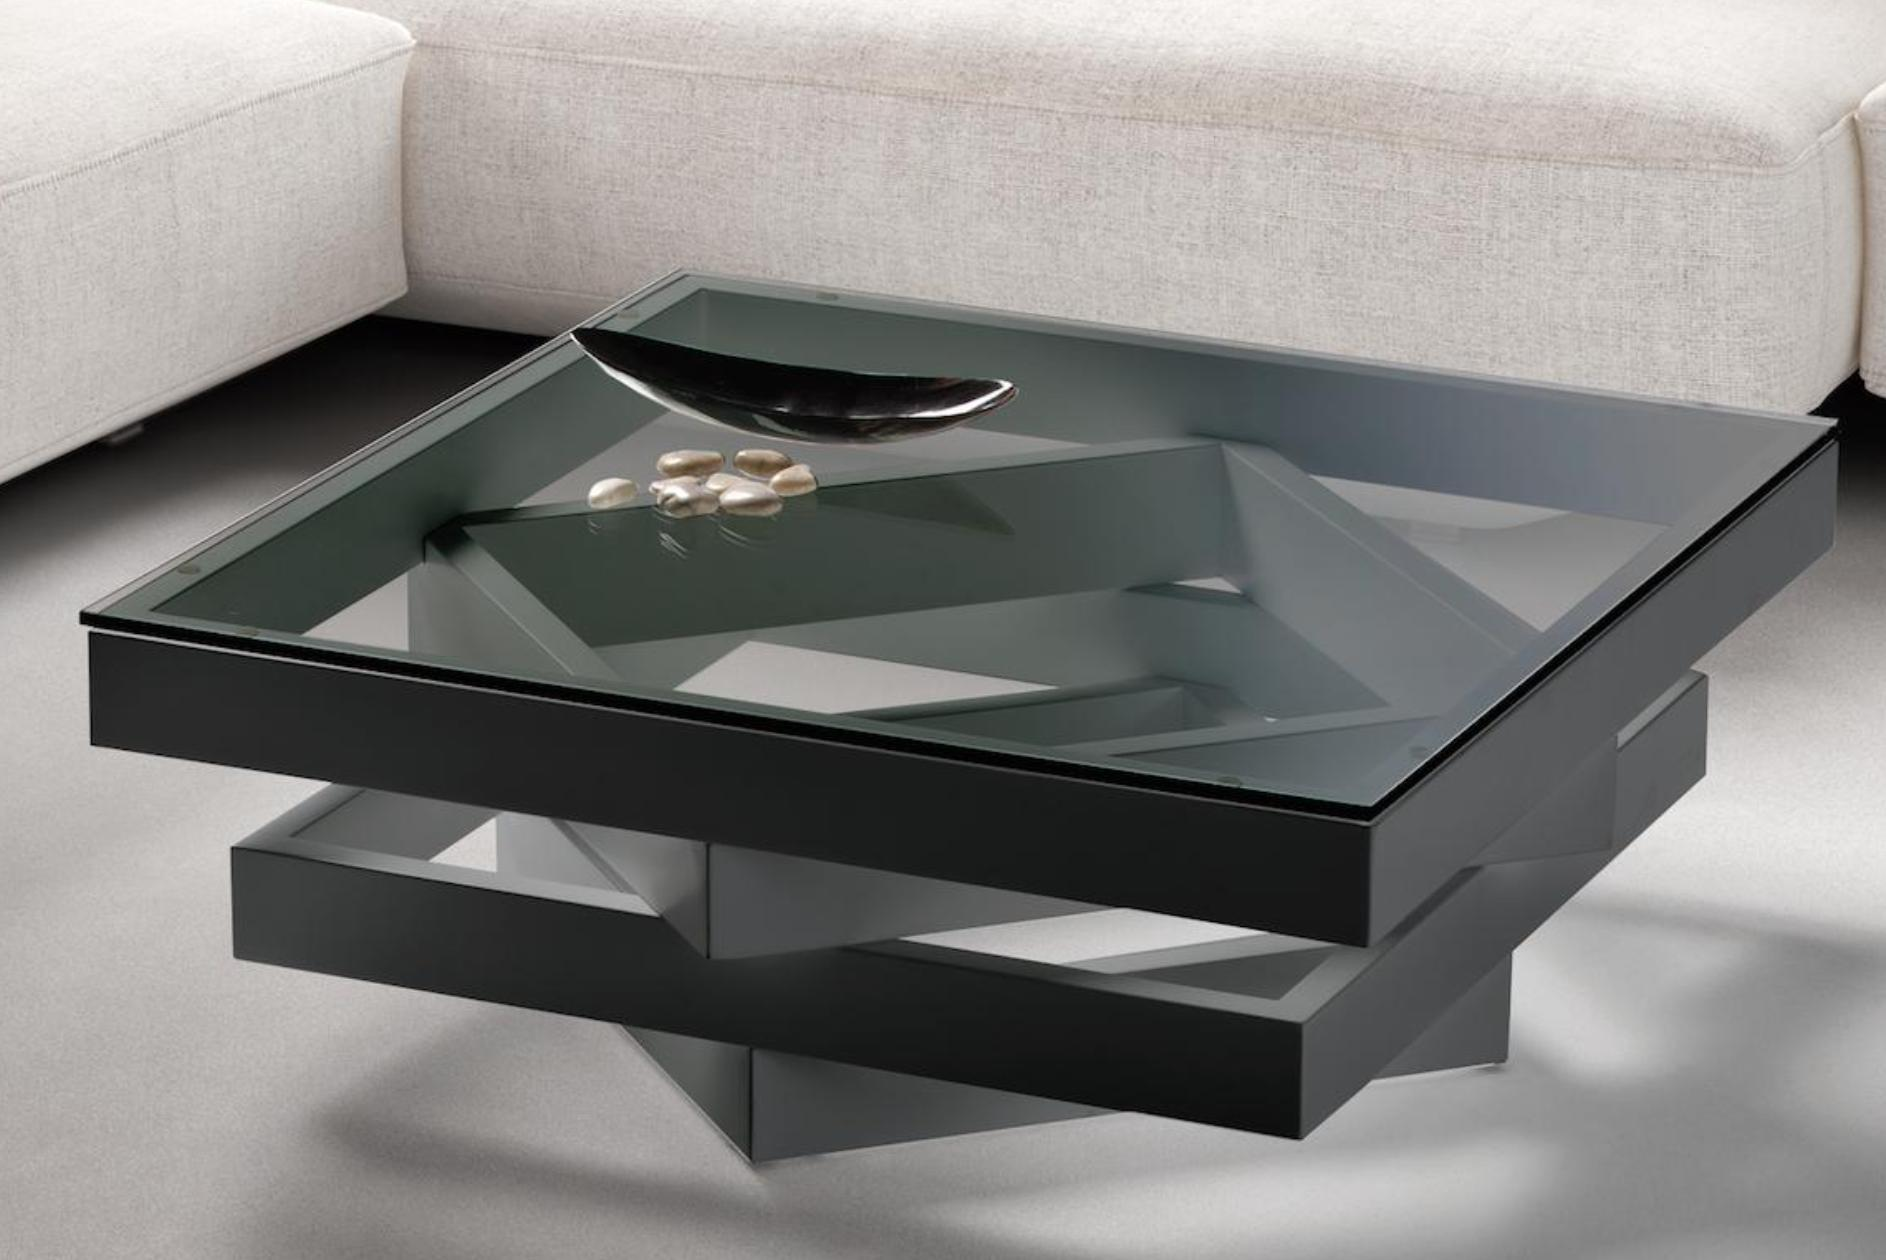 table basse carr e bois laqu multicouleurs gris et verre. Black Bedroom Furniture Sets. Home Design Ideas